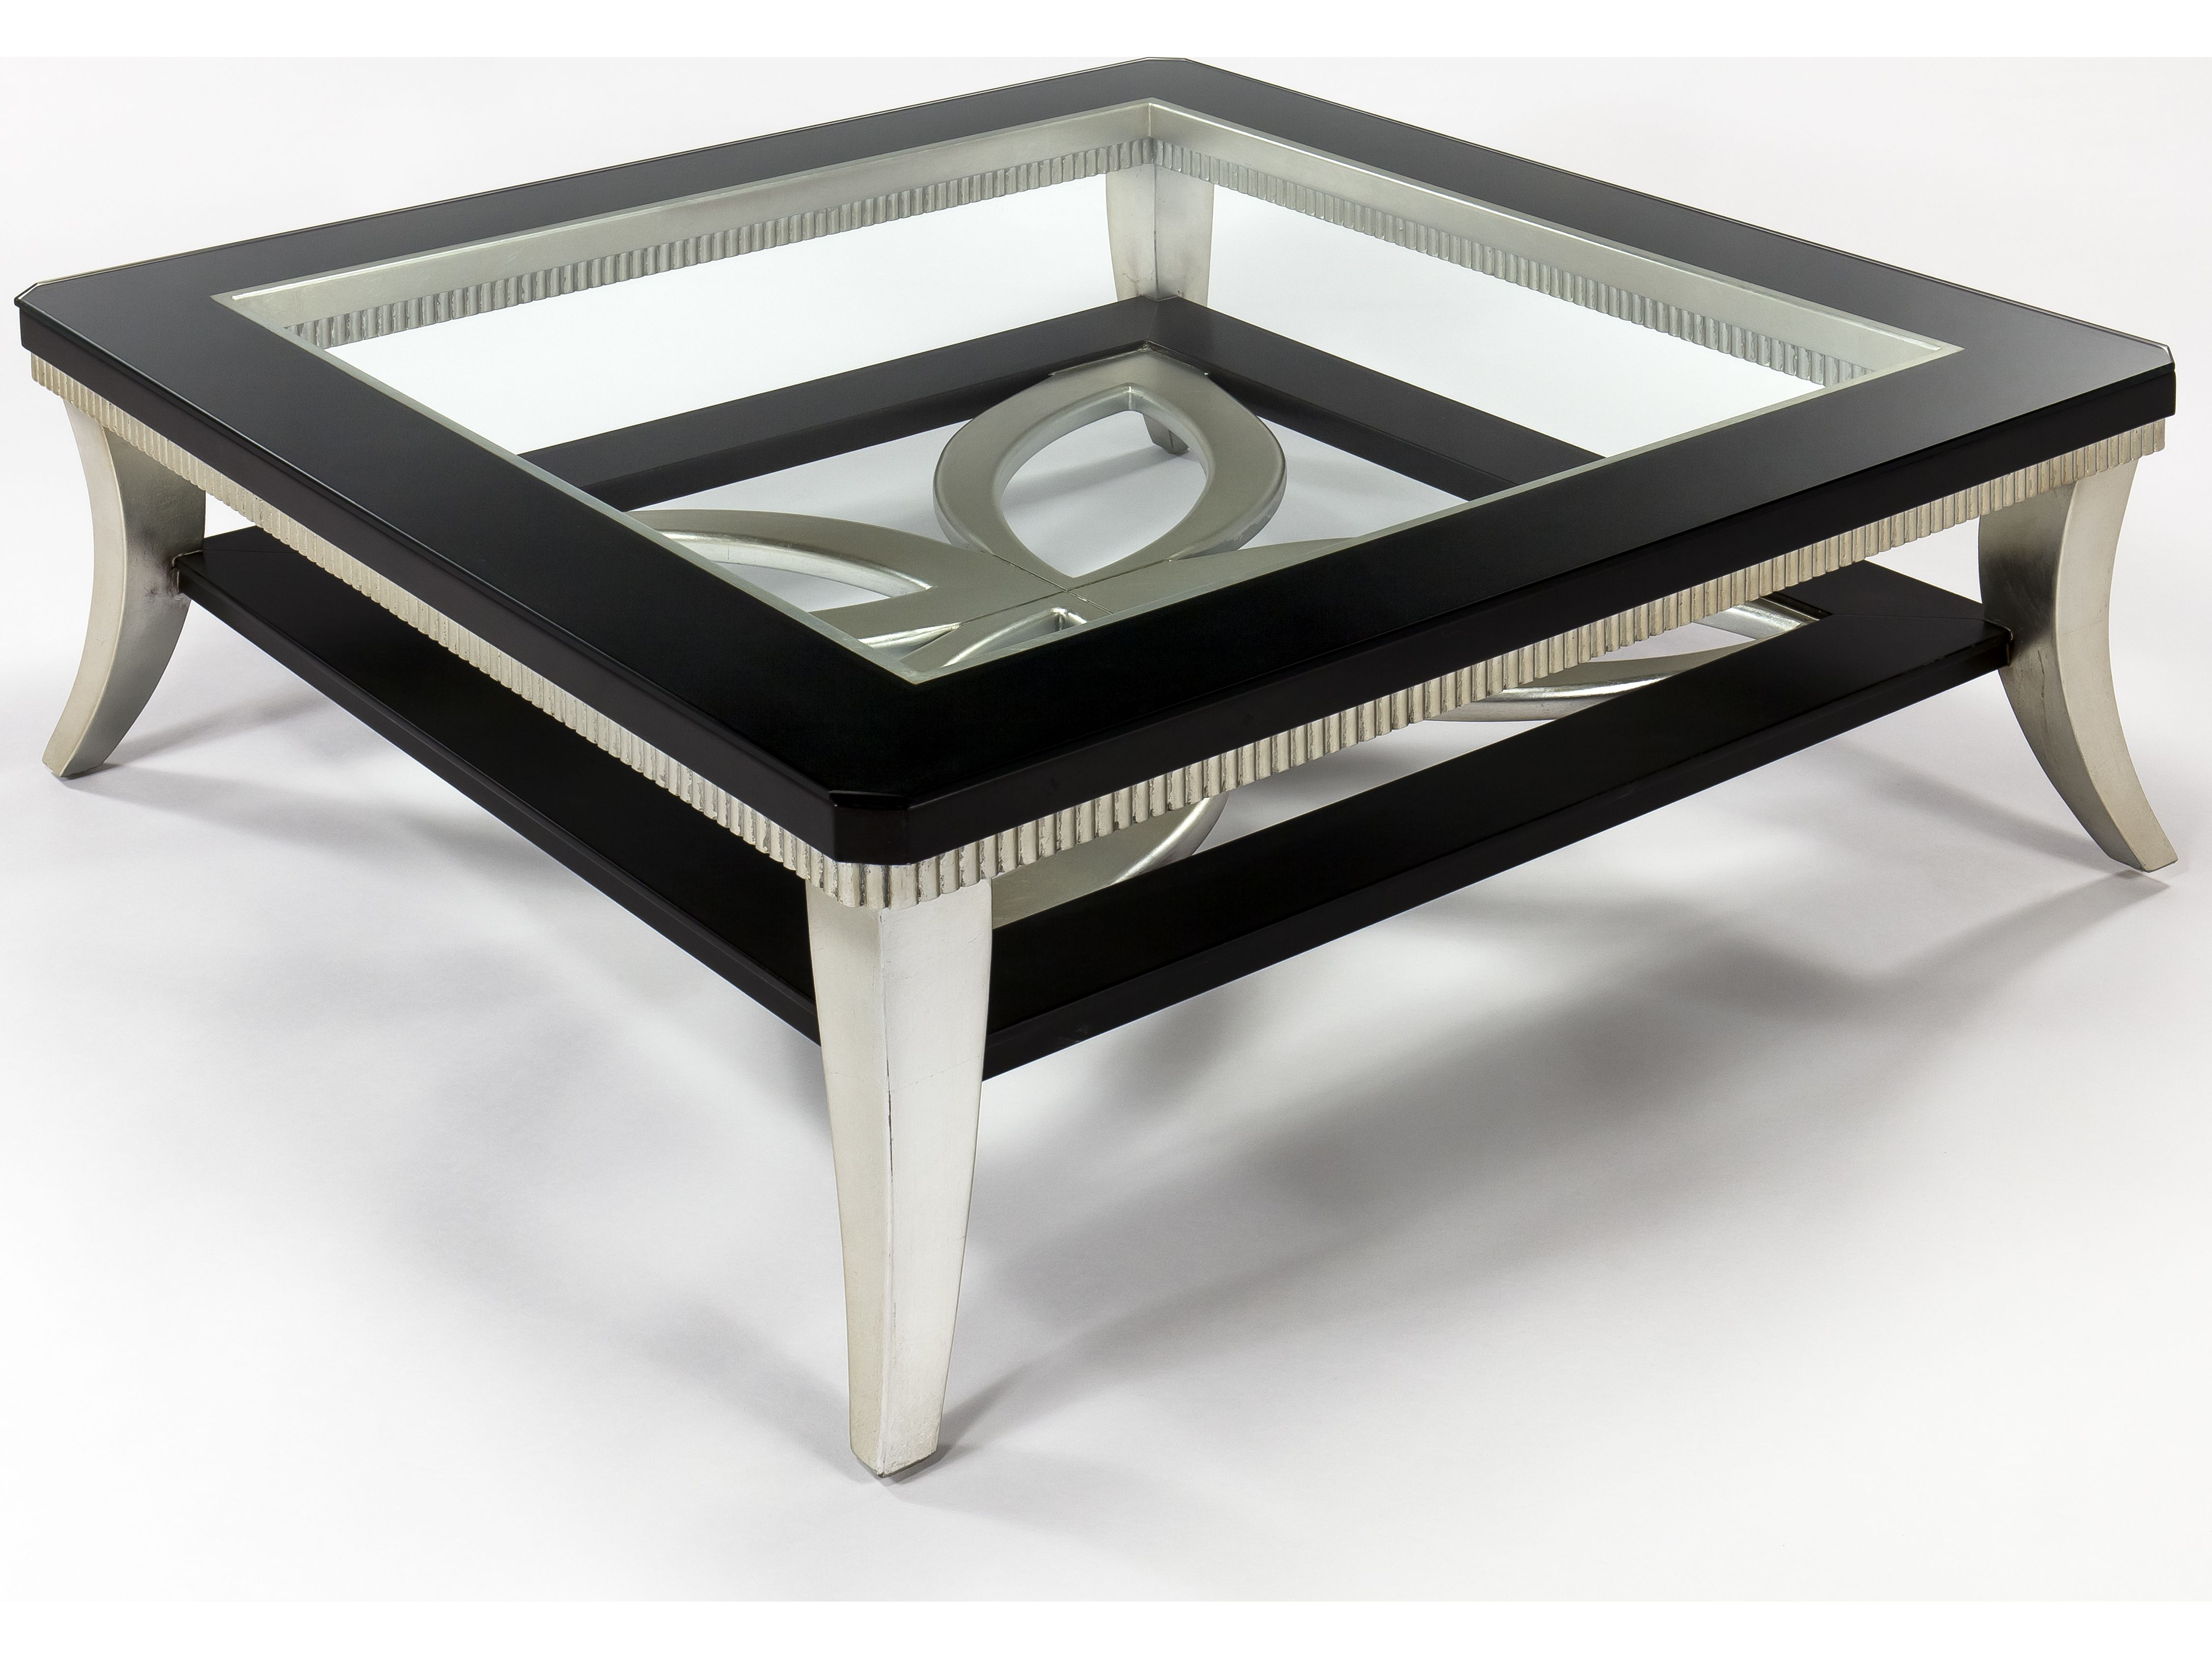 Artmax 42 x 16 5 Square Black Espresso & Silver Leaf Coffee Table